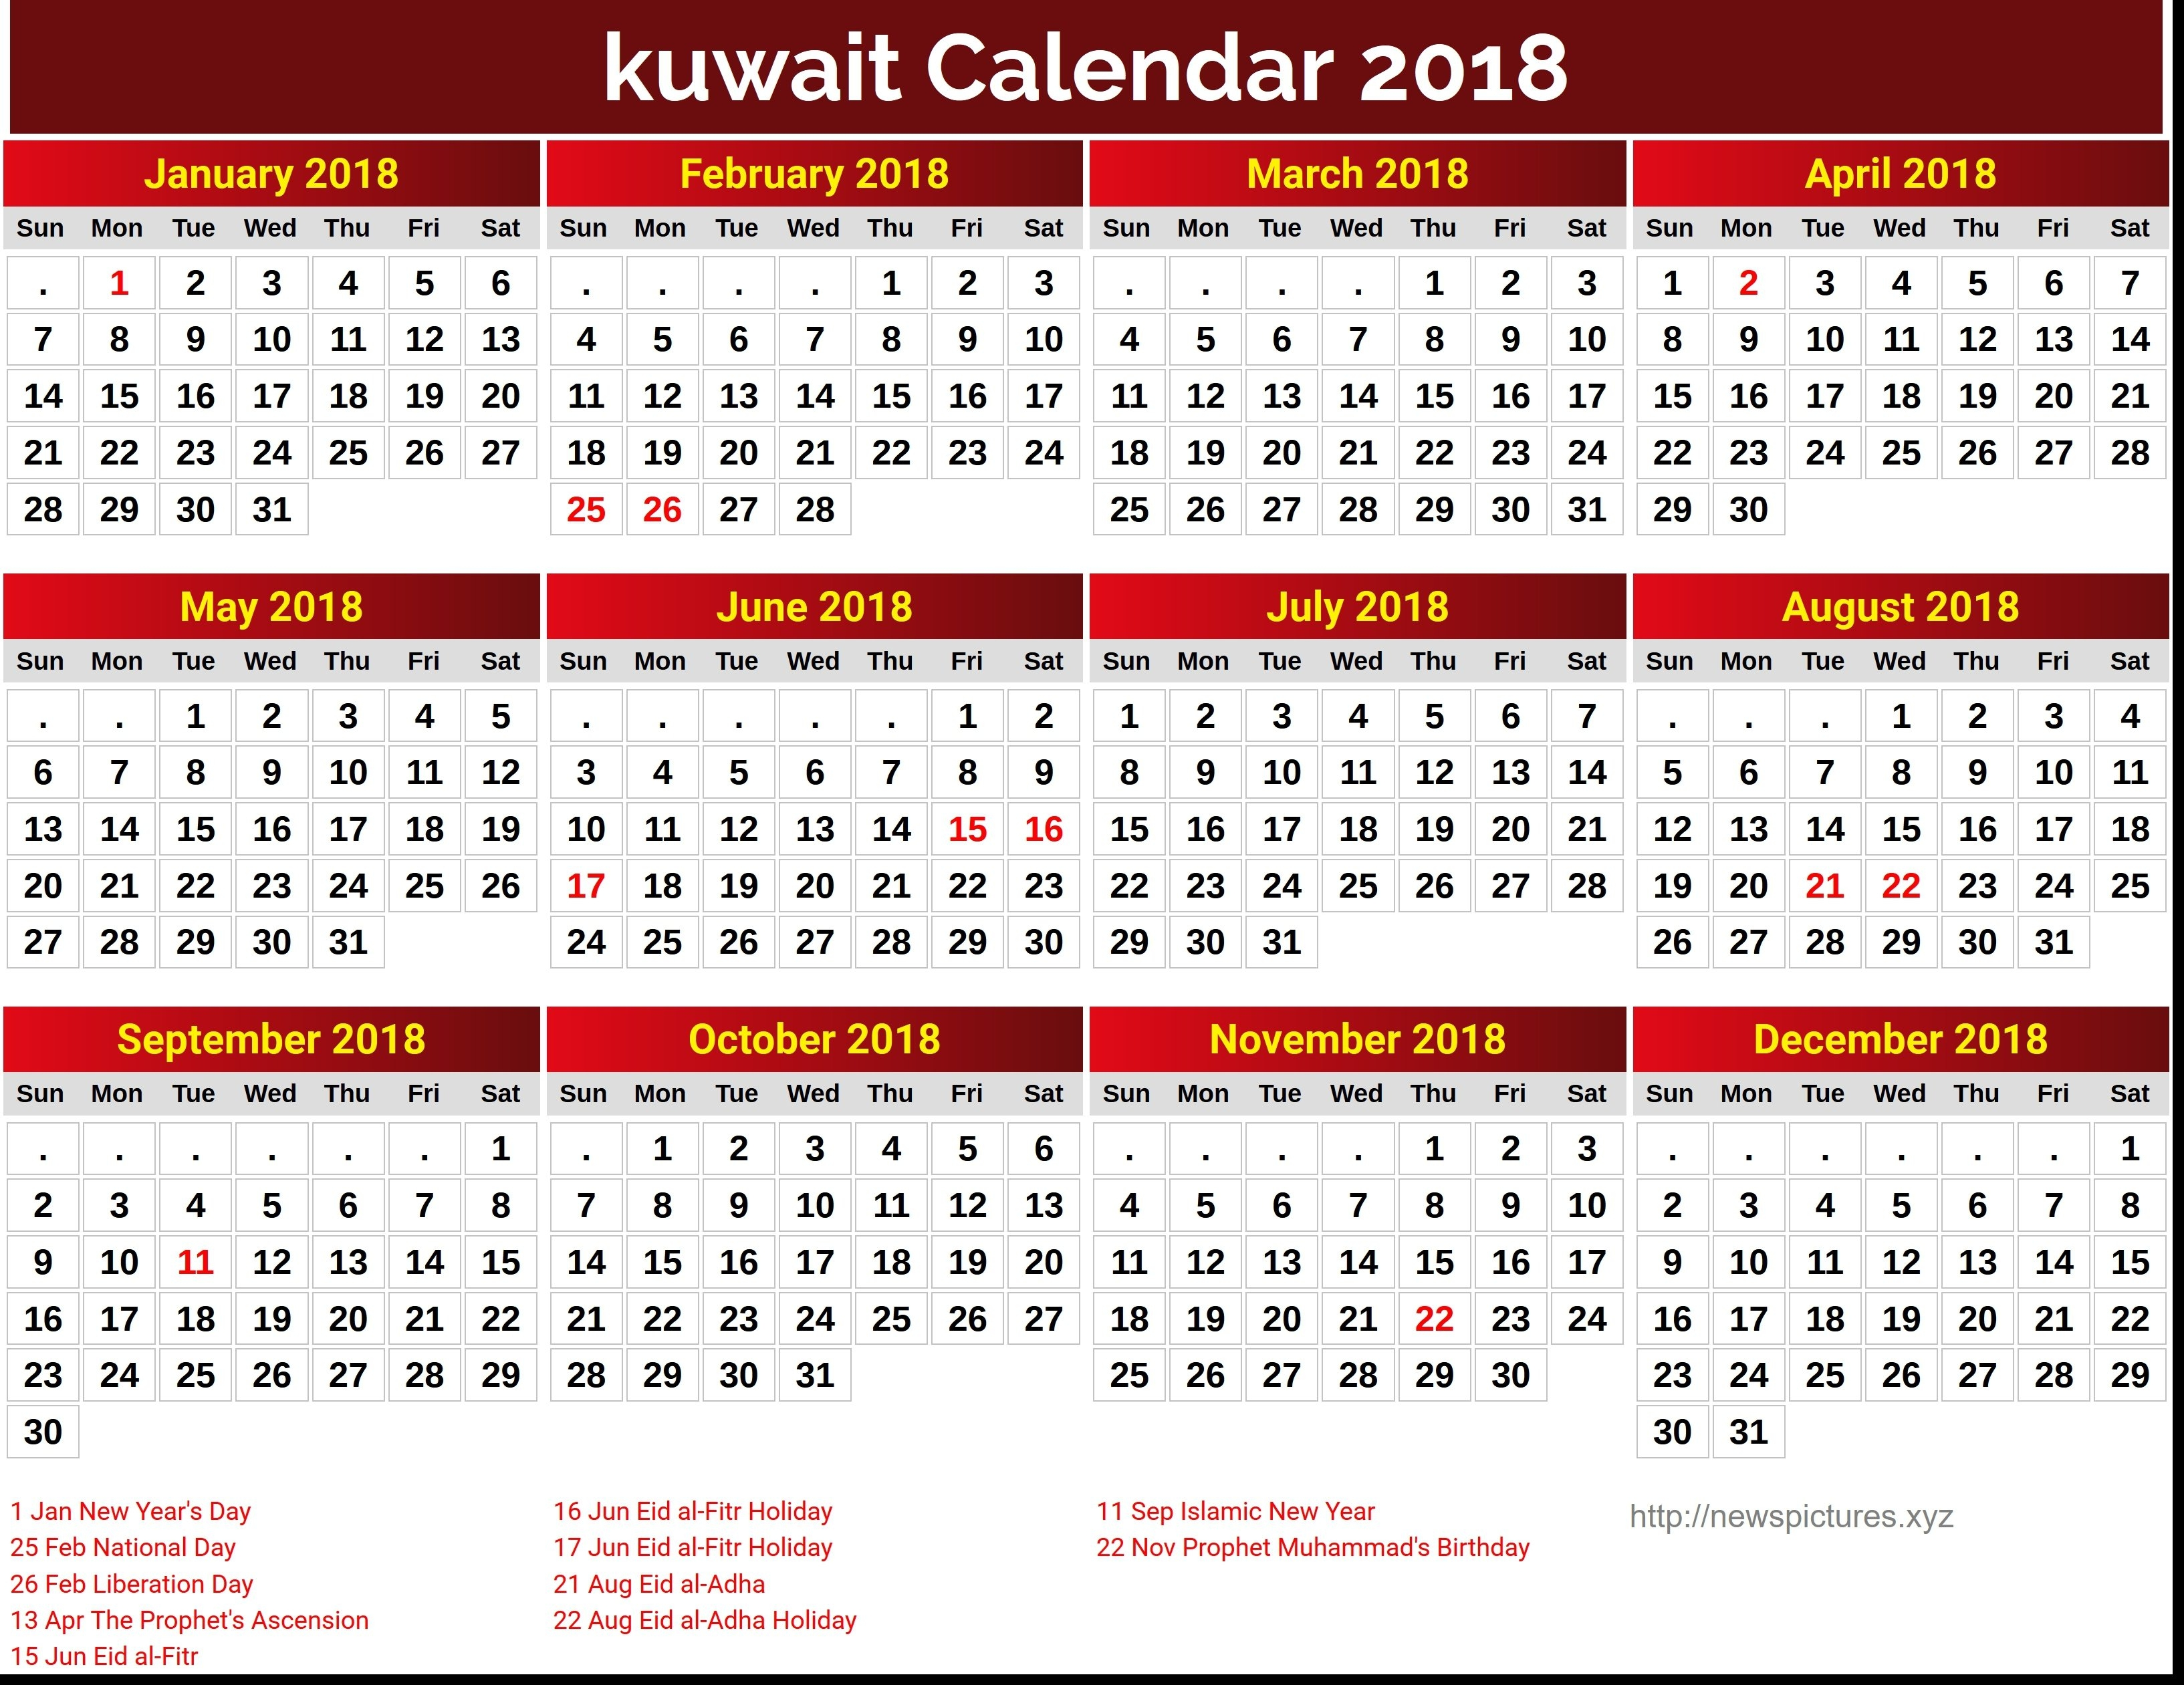 Get Template Of 2019 Calendar With Kuwait Holiday Free | July 2019 Calendar 2019 Kuwait